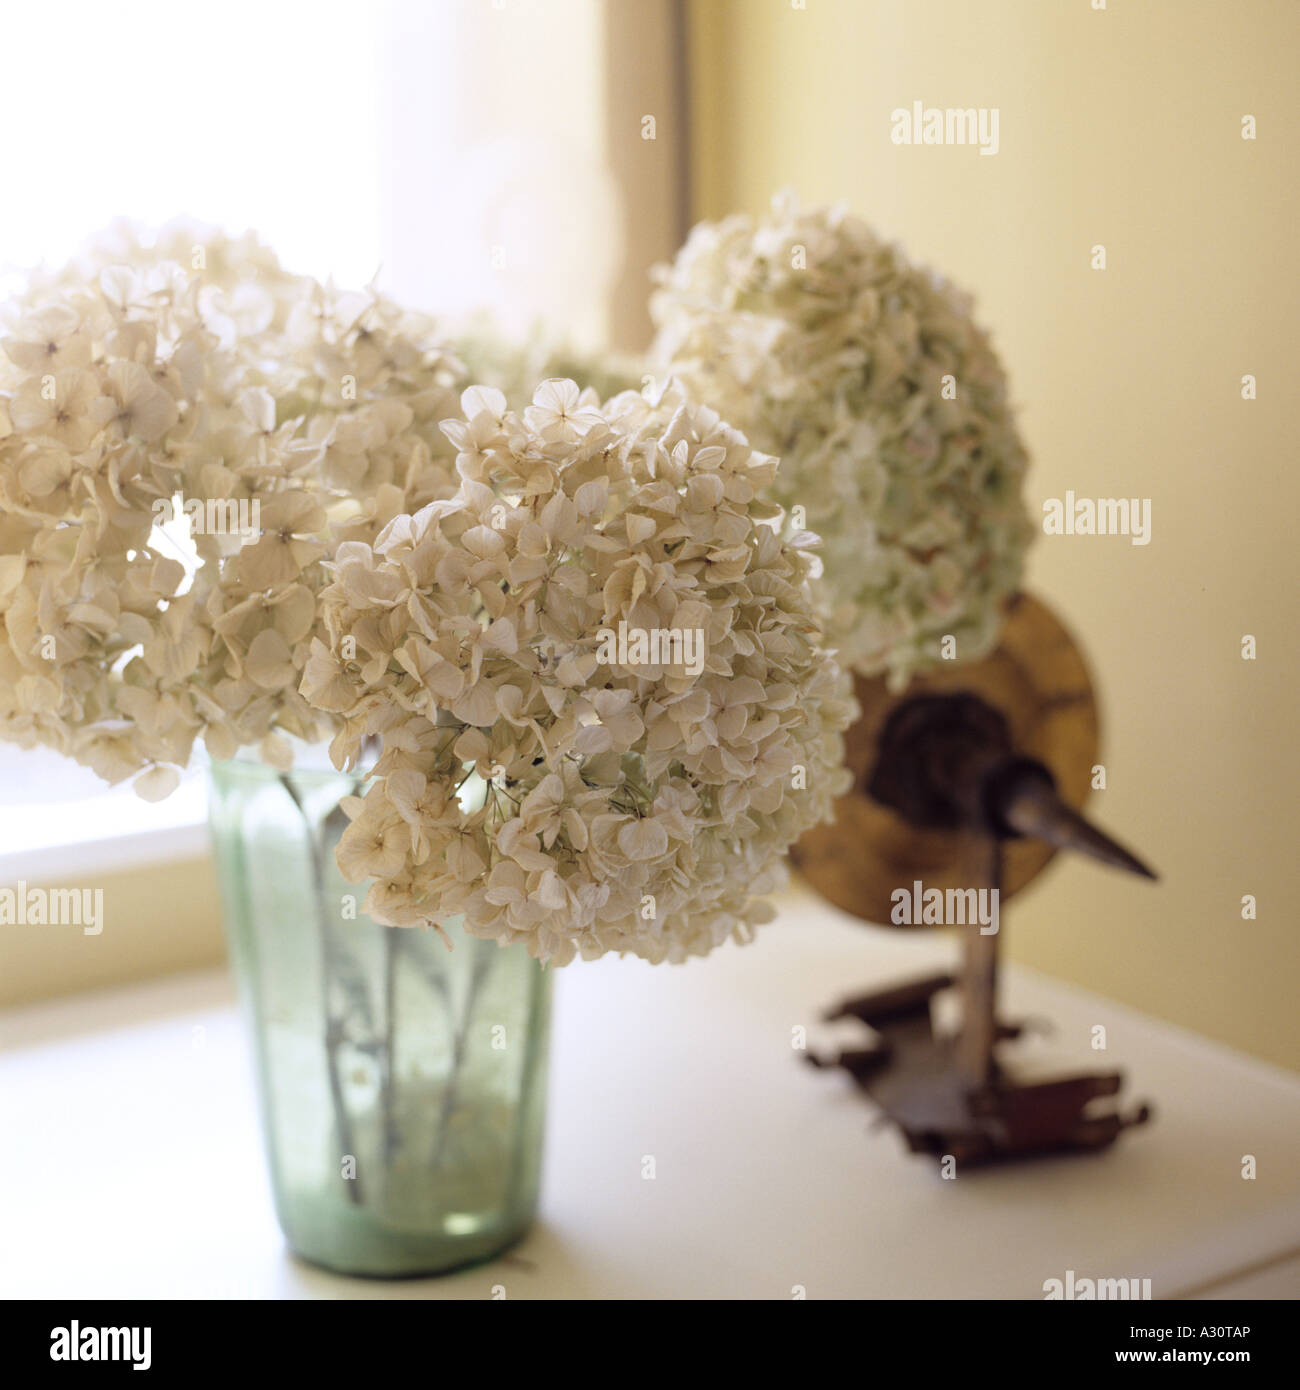 A Still Life Of Dried White Hydrangea Flowers In A Glass On A Stock